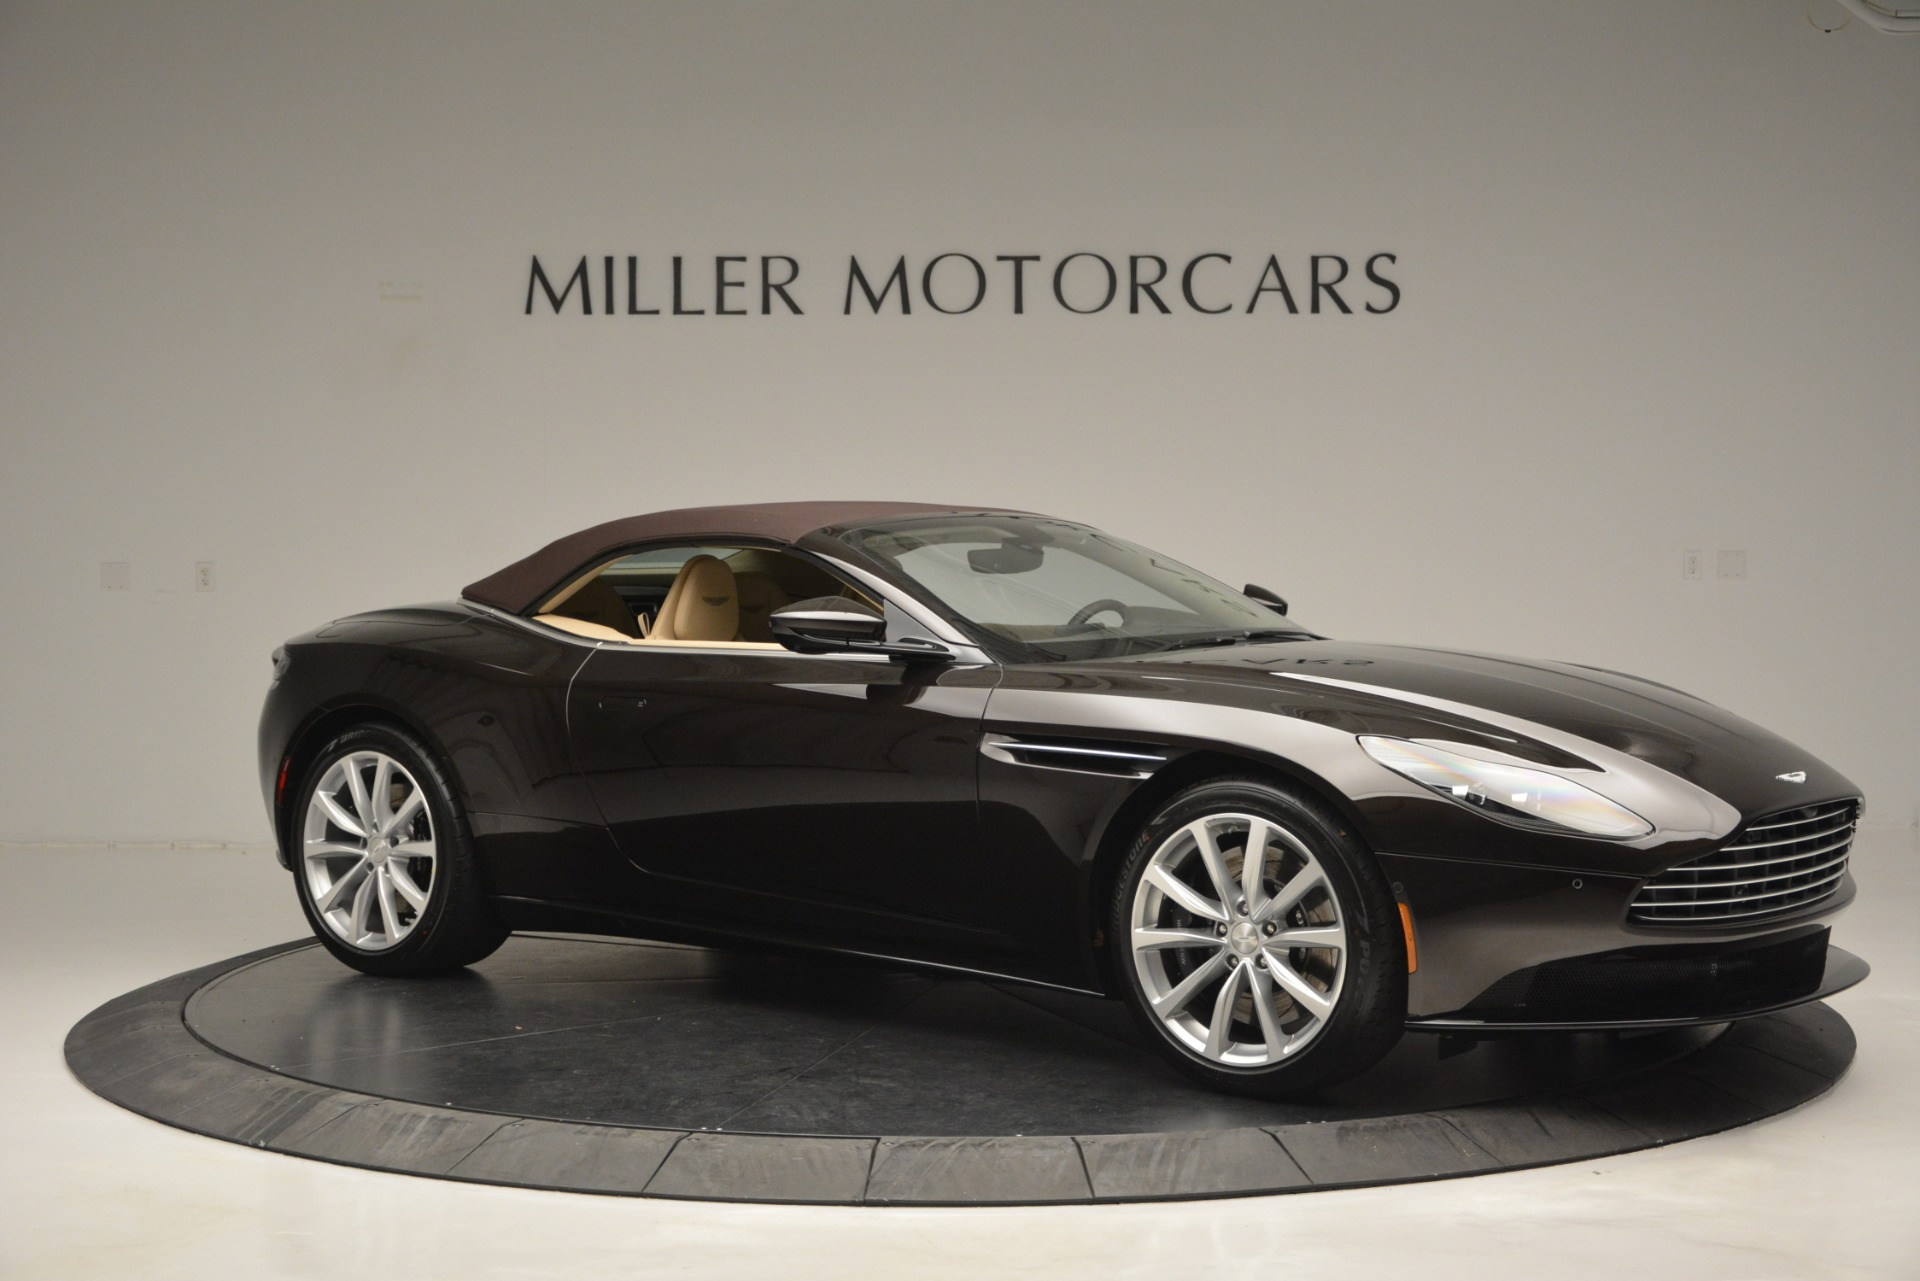 New 2019 Aston Martin DB11 Volante For Sale In Westport, CT 2905_p22